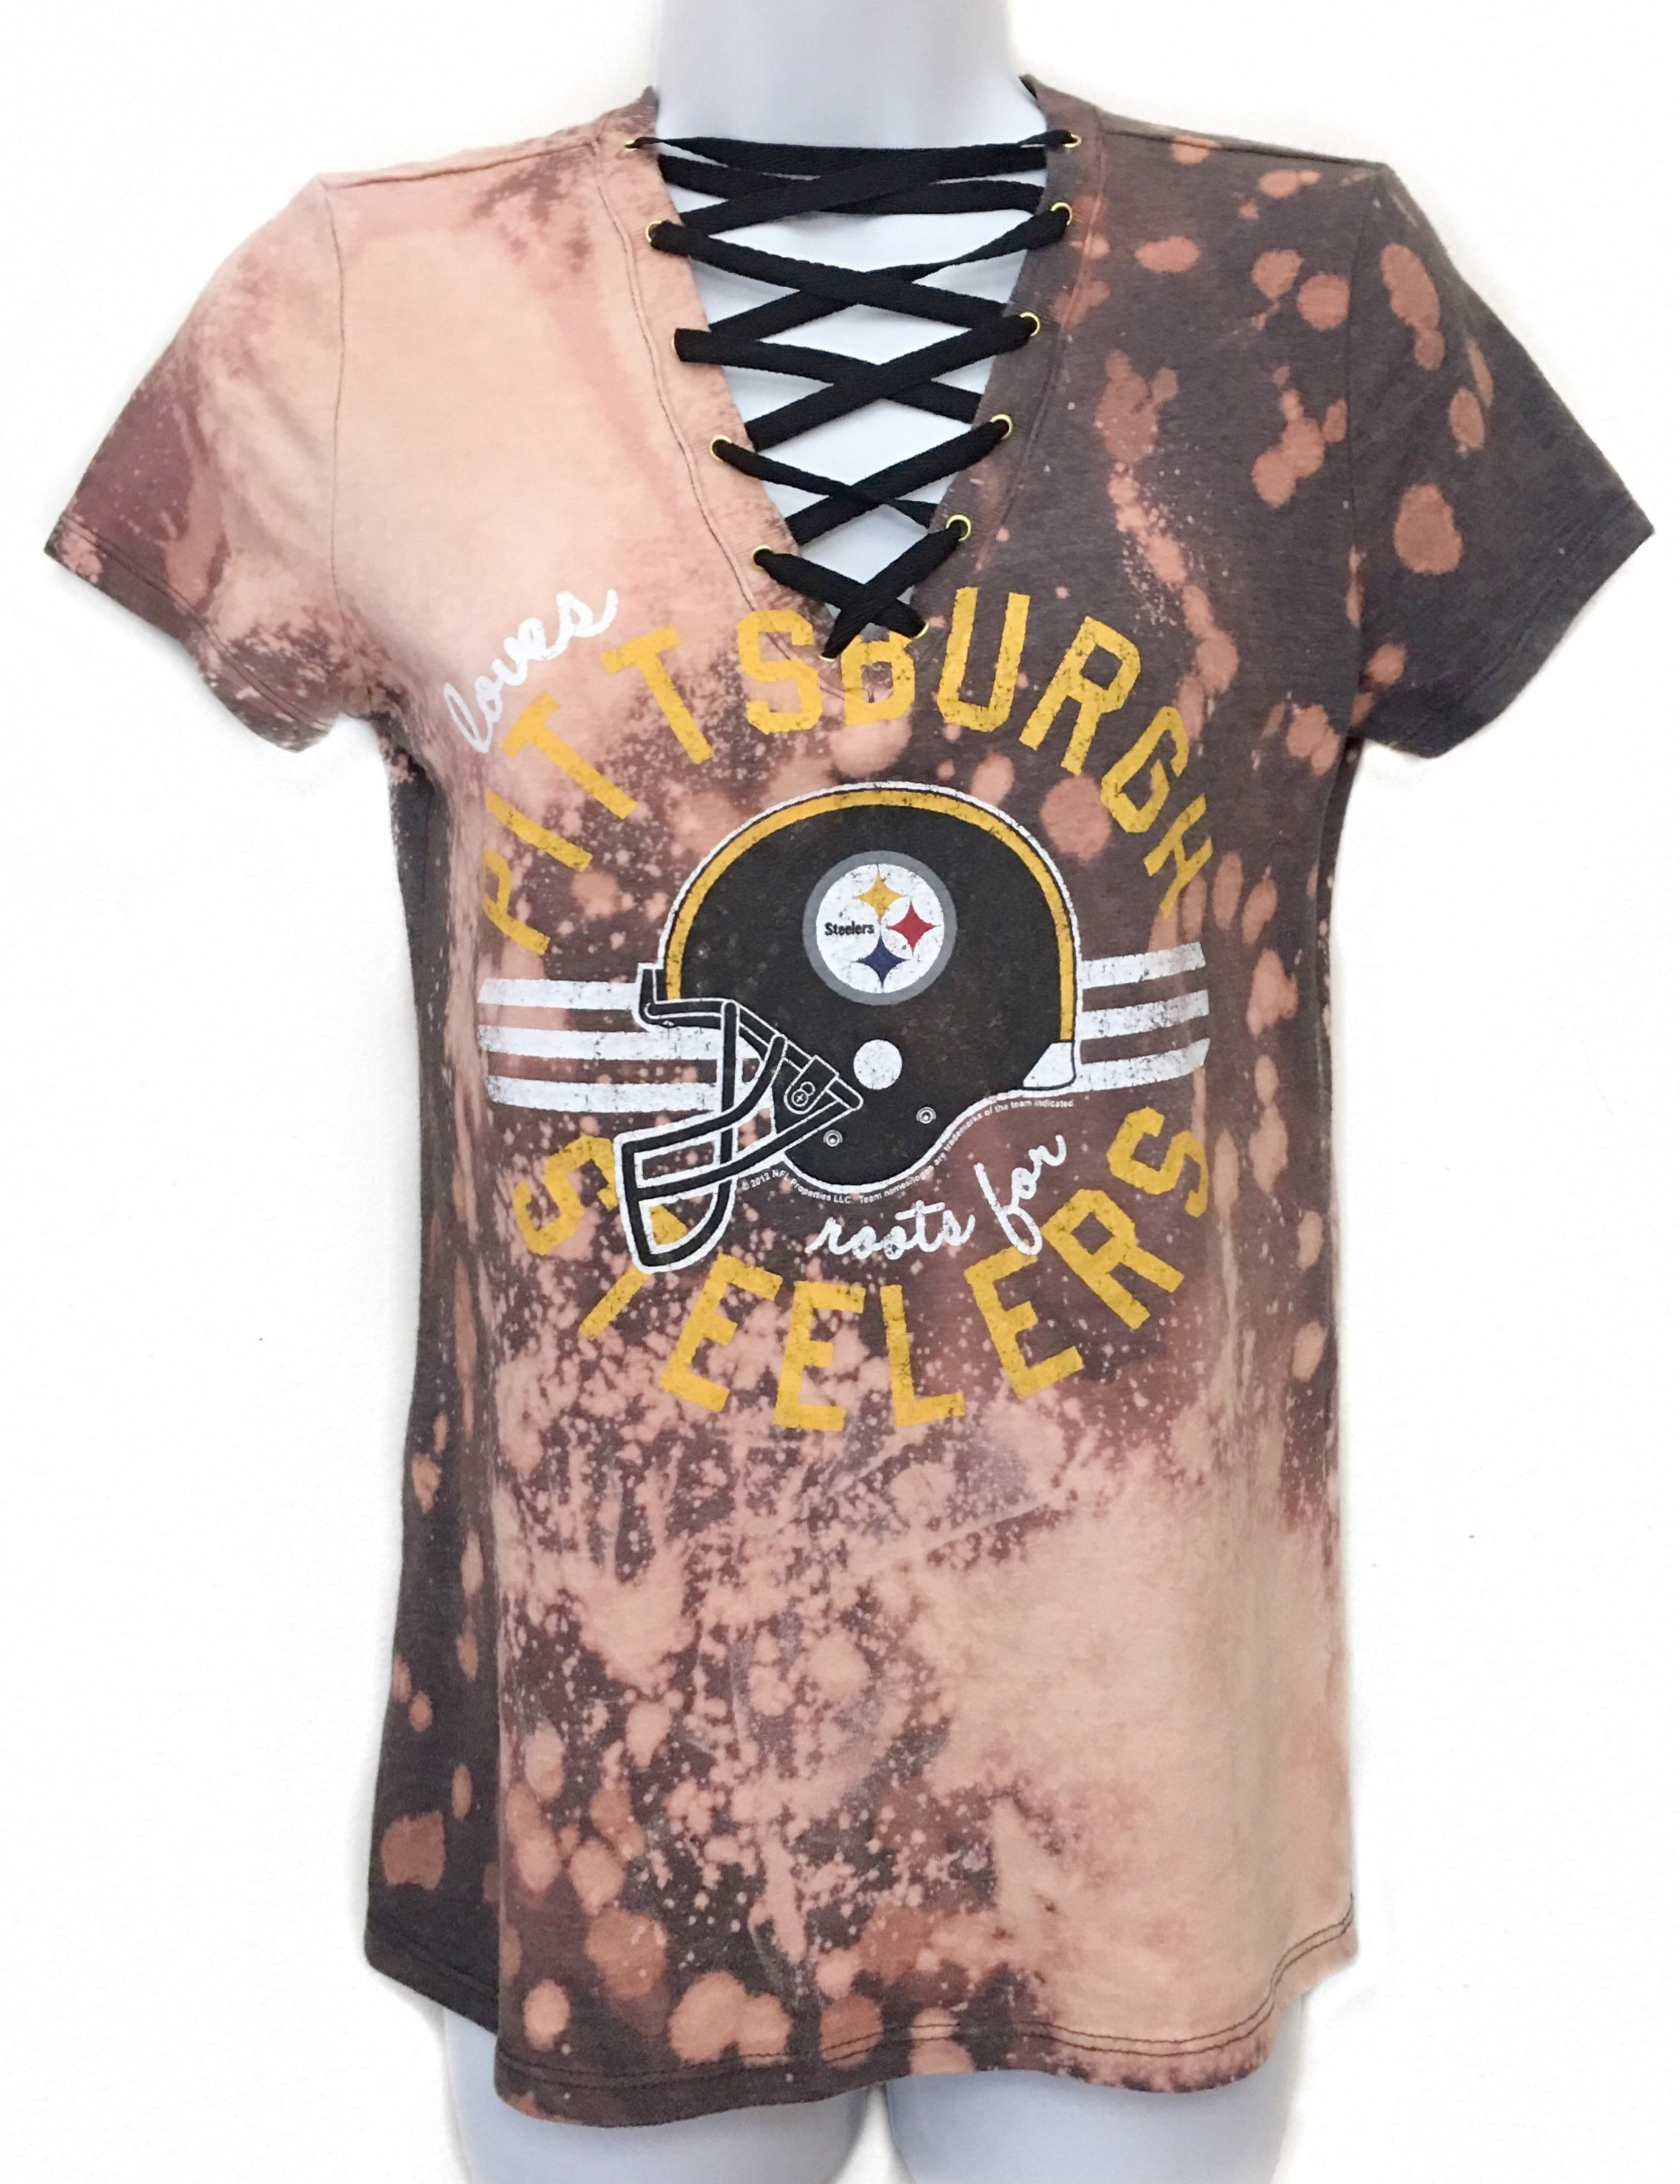 new styles c154a 91952 Pittsburgh Steelers Shirt Steelers Shirt Women Steelers T Shirt Steelers  Tshirt Steelers Tank Top Steelers Top Womens Steelers Shirt